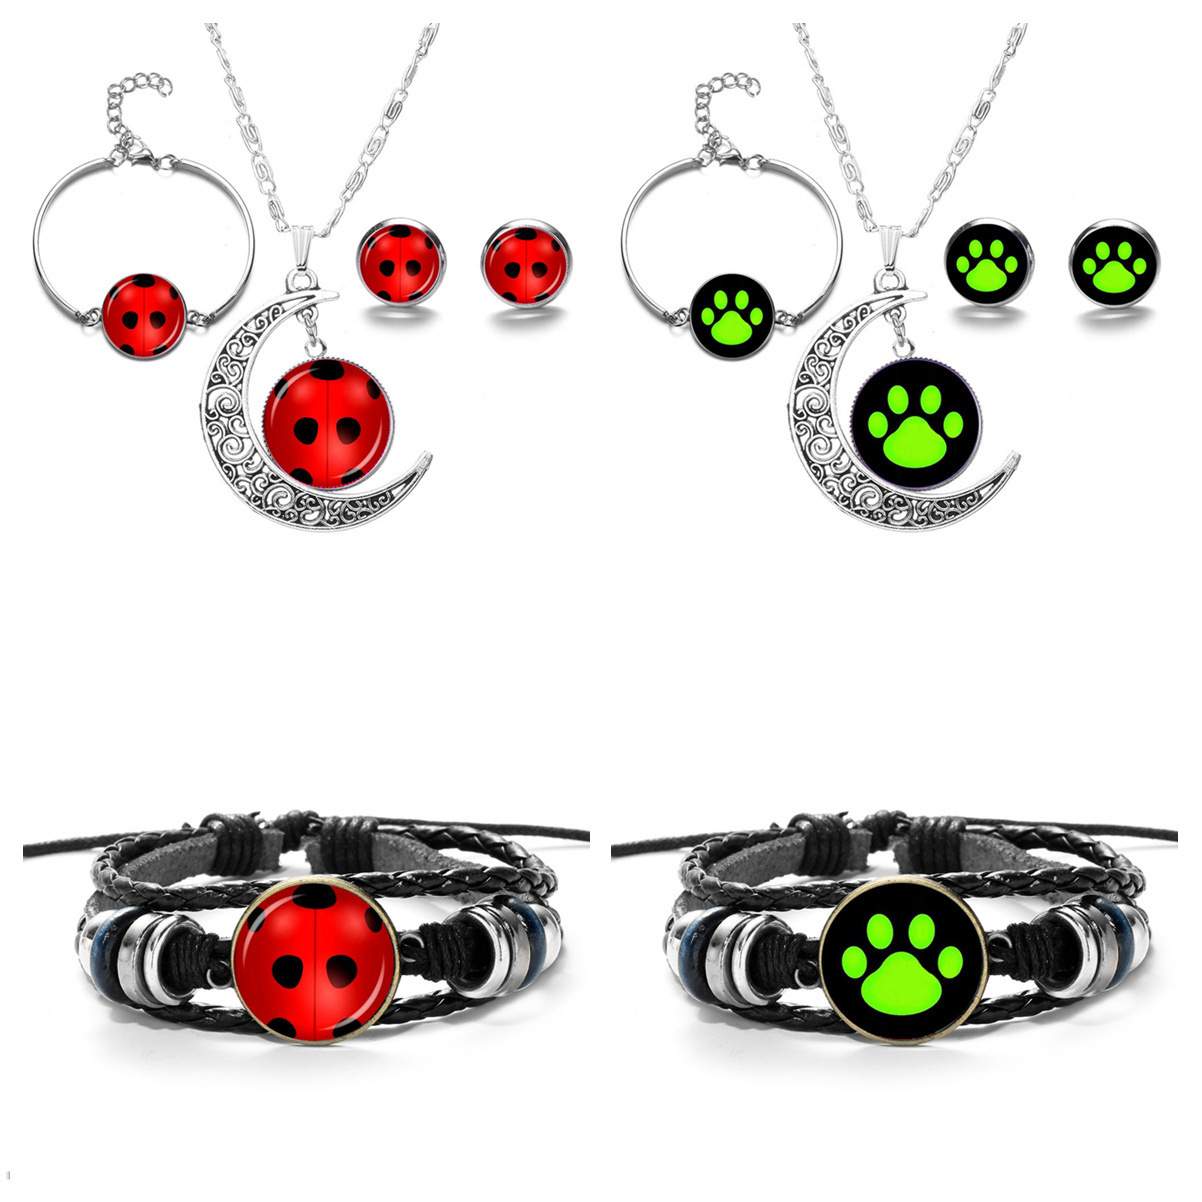 Ladybug GIRL'S Black Cat Necklace Ear Stud Bracelets CHILDREN'S Ornaments Miraculous Ladybug Cross Border Hot Selling